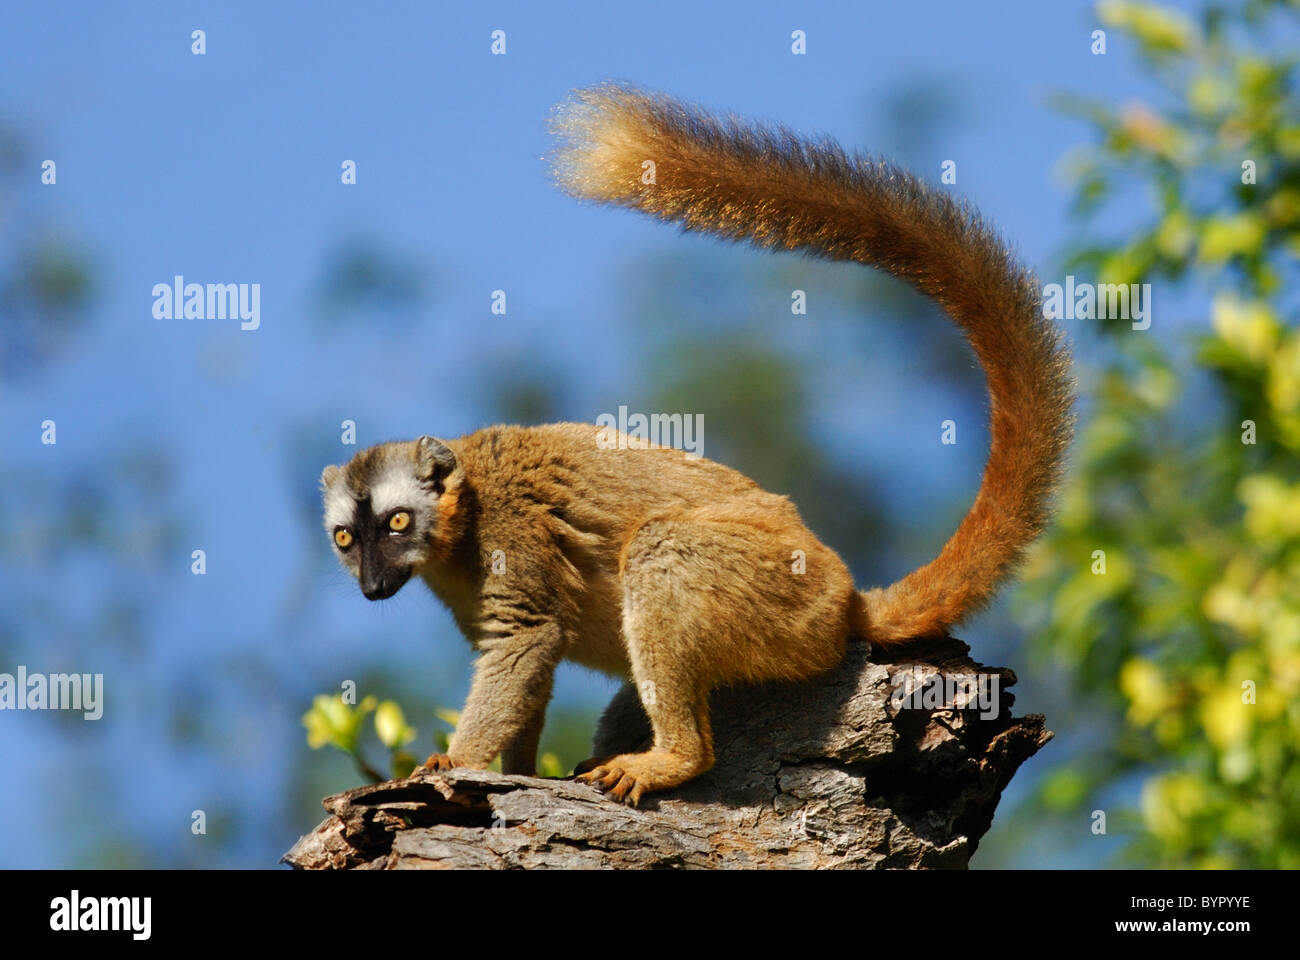 Red-fronted Brown Lemur (Eulemur rufus) in the Berenty Nature Reserve, southern Madagascar - Stock Image